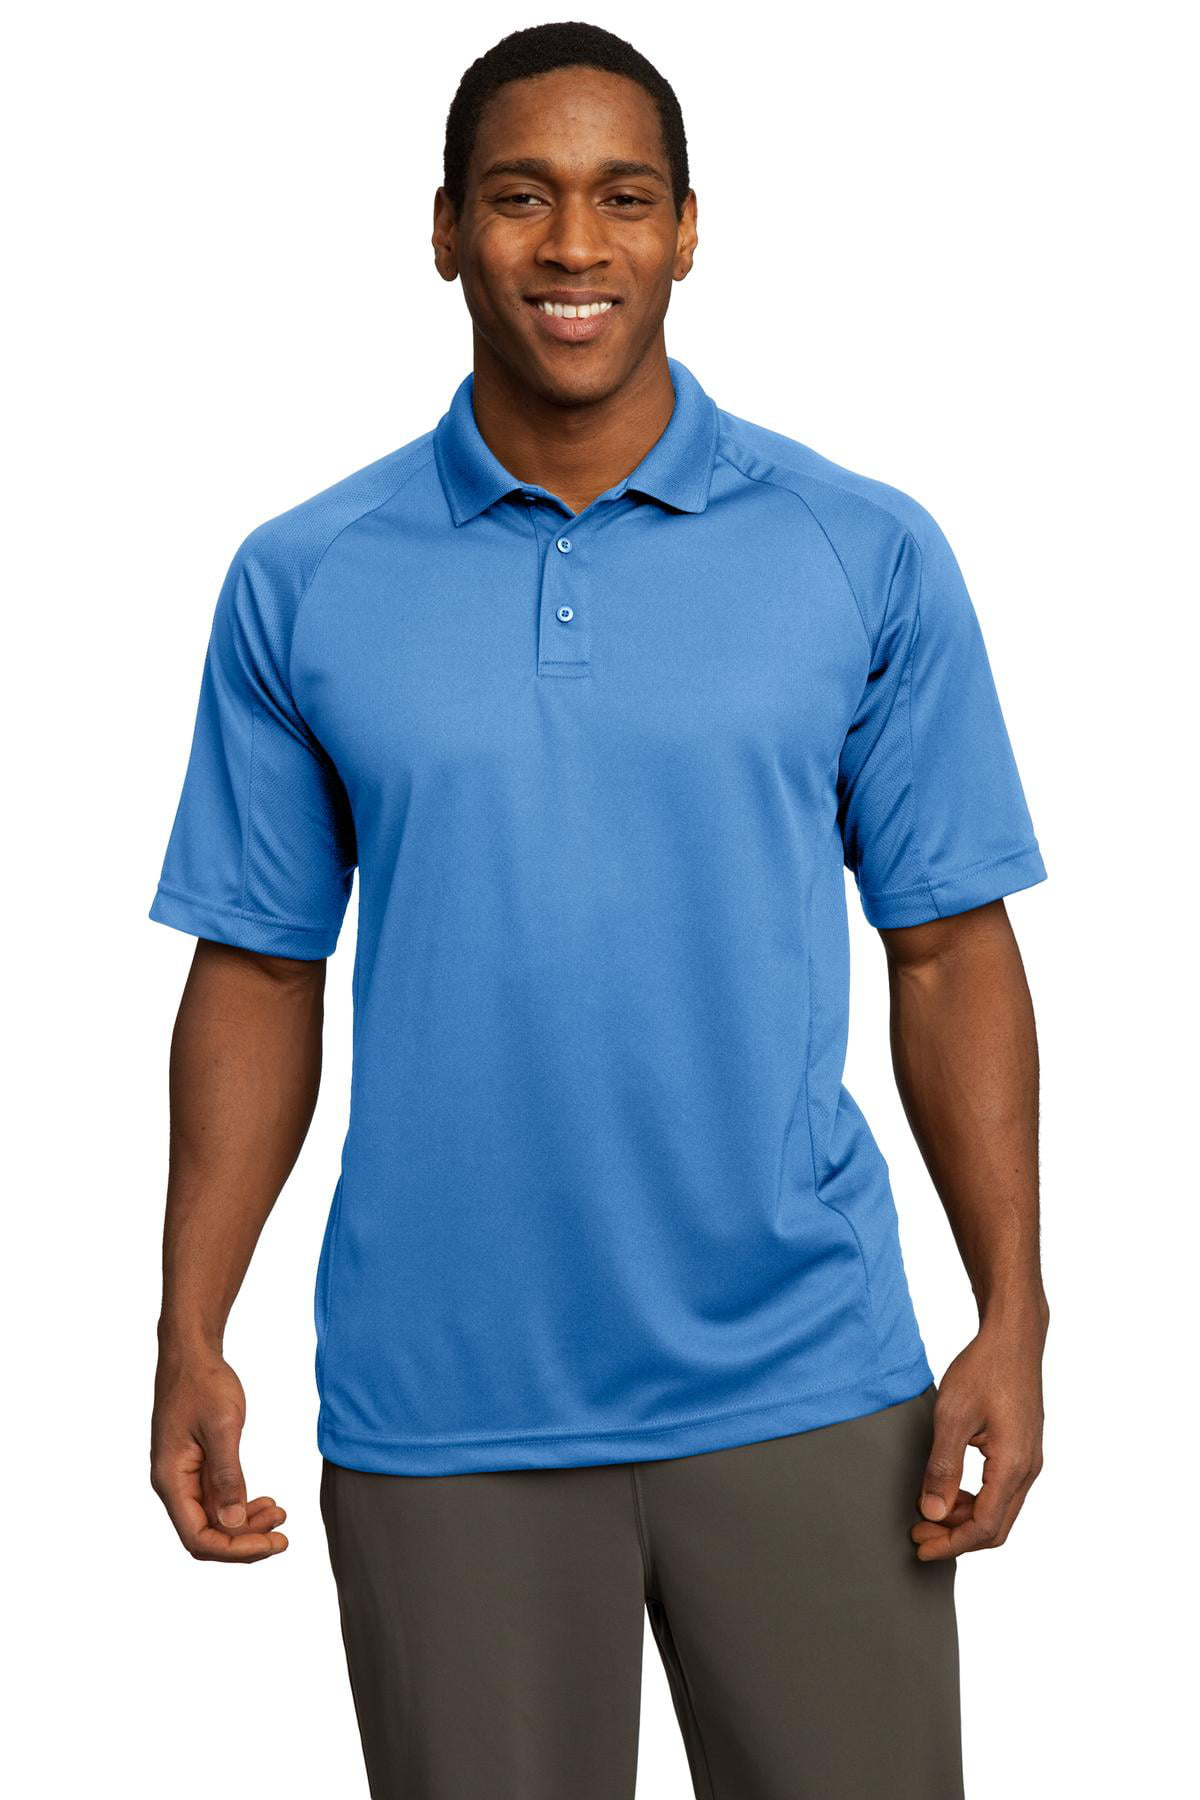 Sport Tek T474 Golf Shirt Unisex Adult Dri Mesh Pro Polo Walmart Com Walmart Com Whichever purpose you customize your dri fit shirts, it depends on individual preferences on the different types of dri fit. walmart